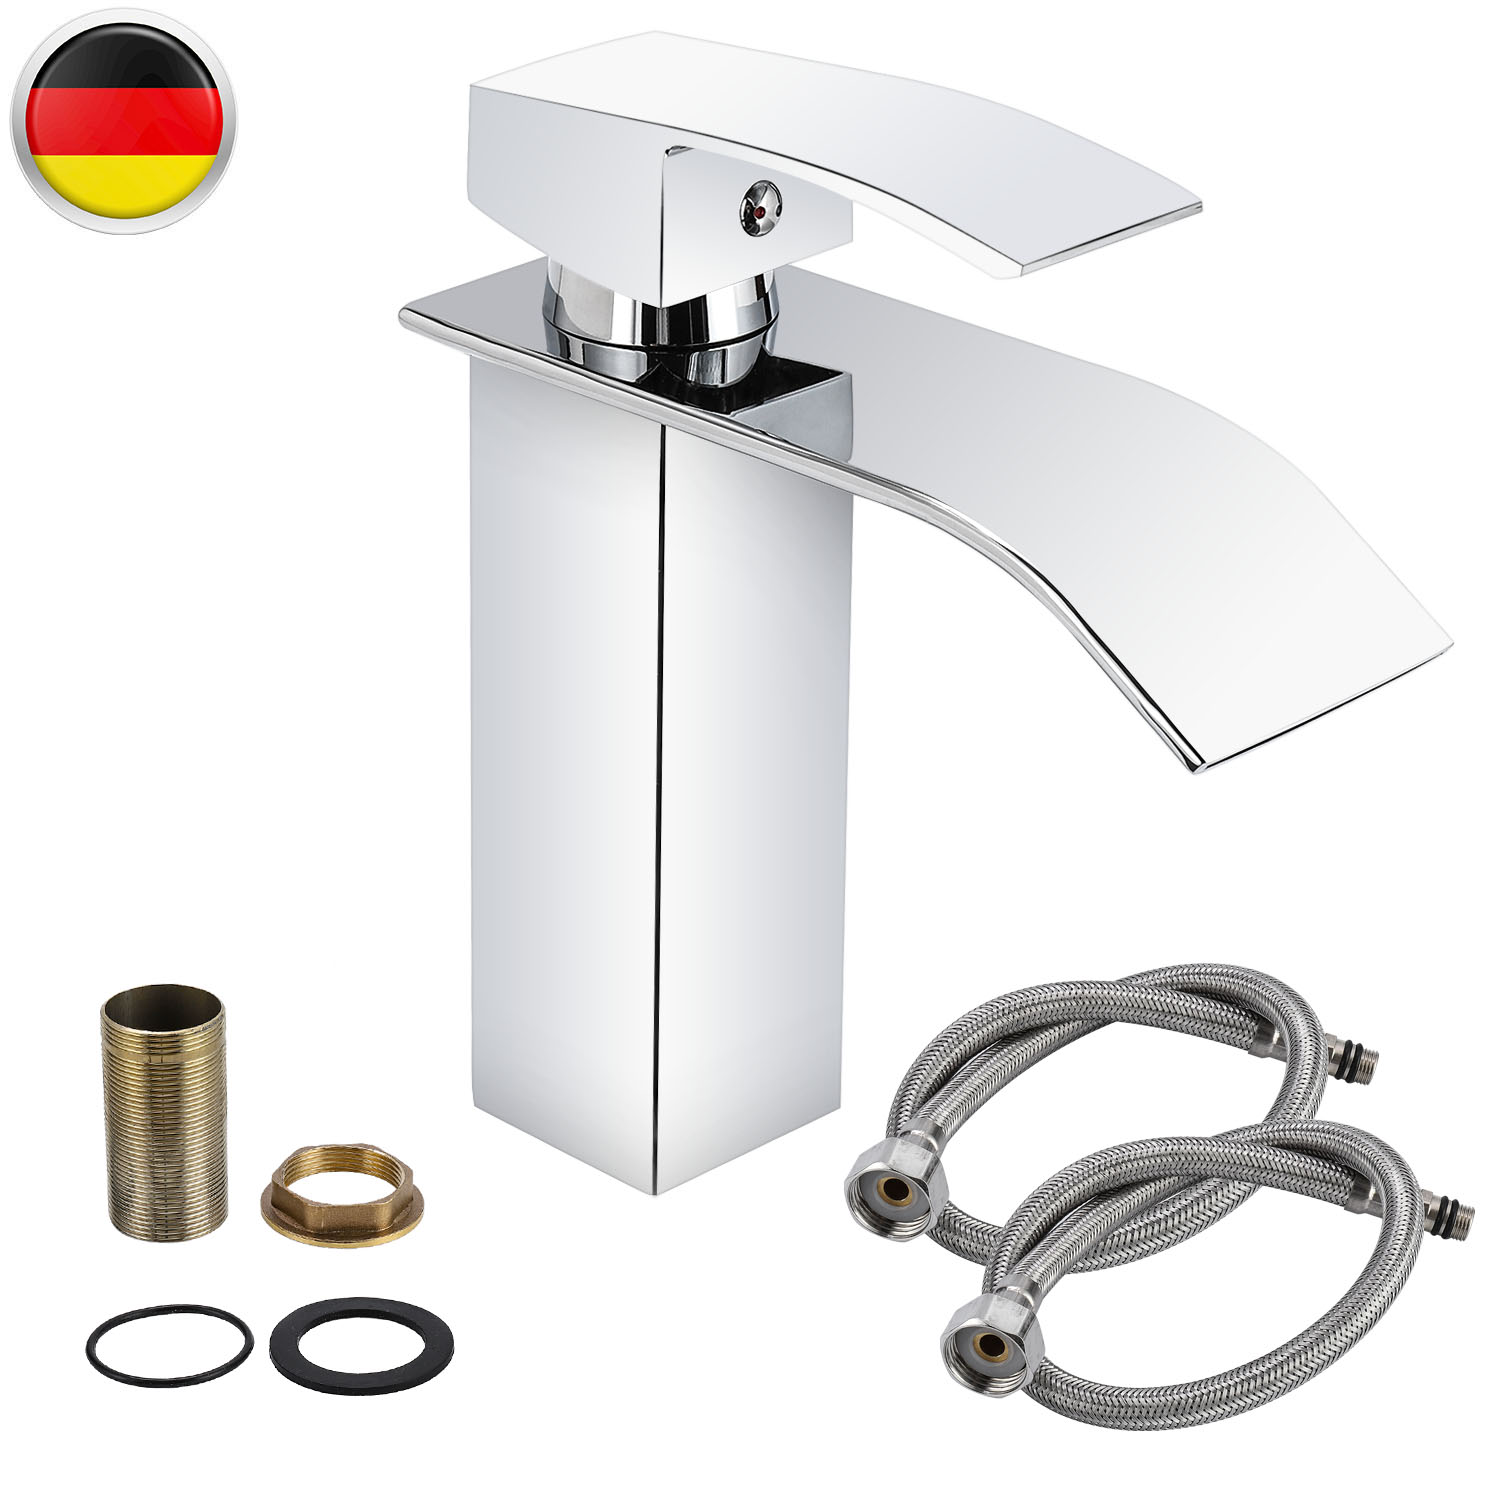 Hot And Cold Water Hoses Mixer Tap Bathroom Wash Basin Sink Tap Waterfall Brass Faucet For Any Contemporary Designed Bathroom